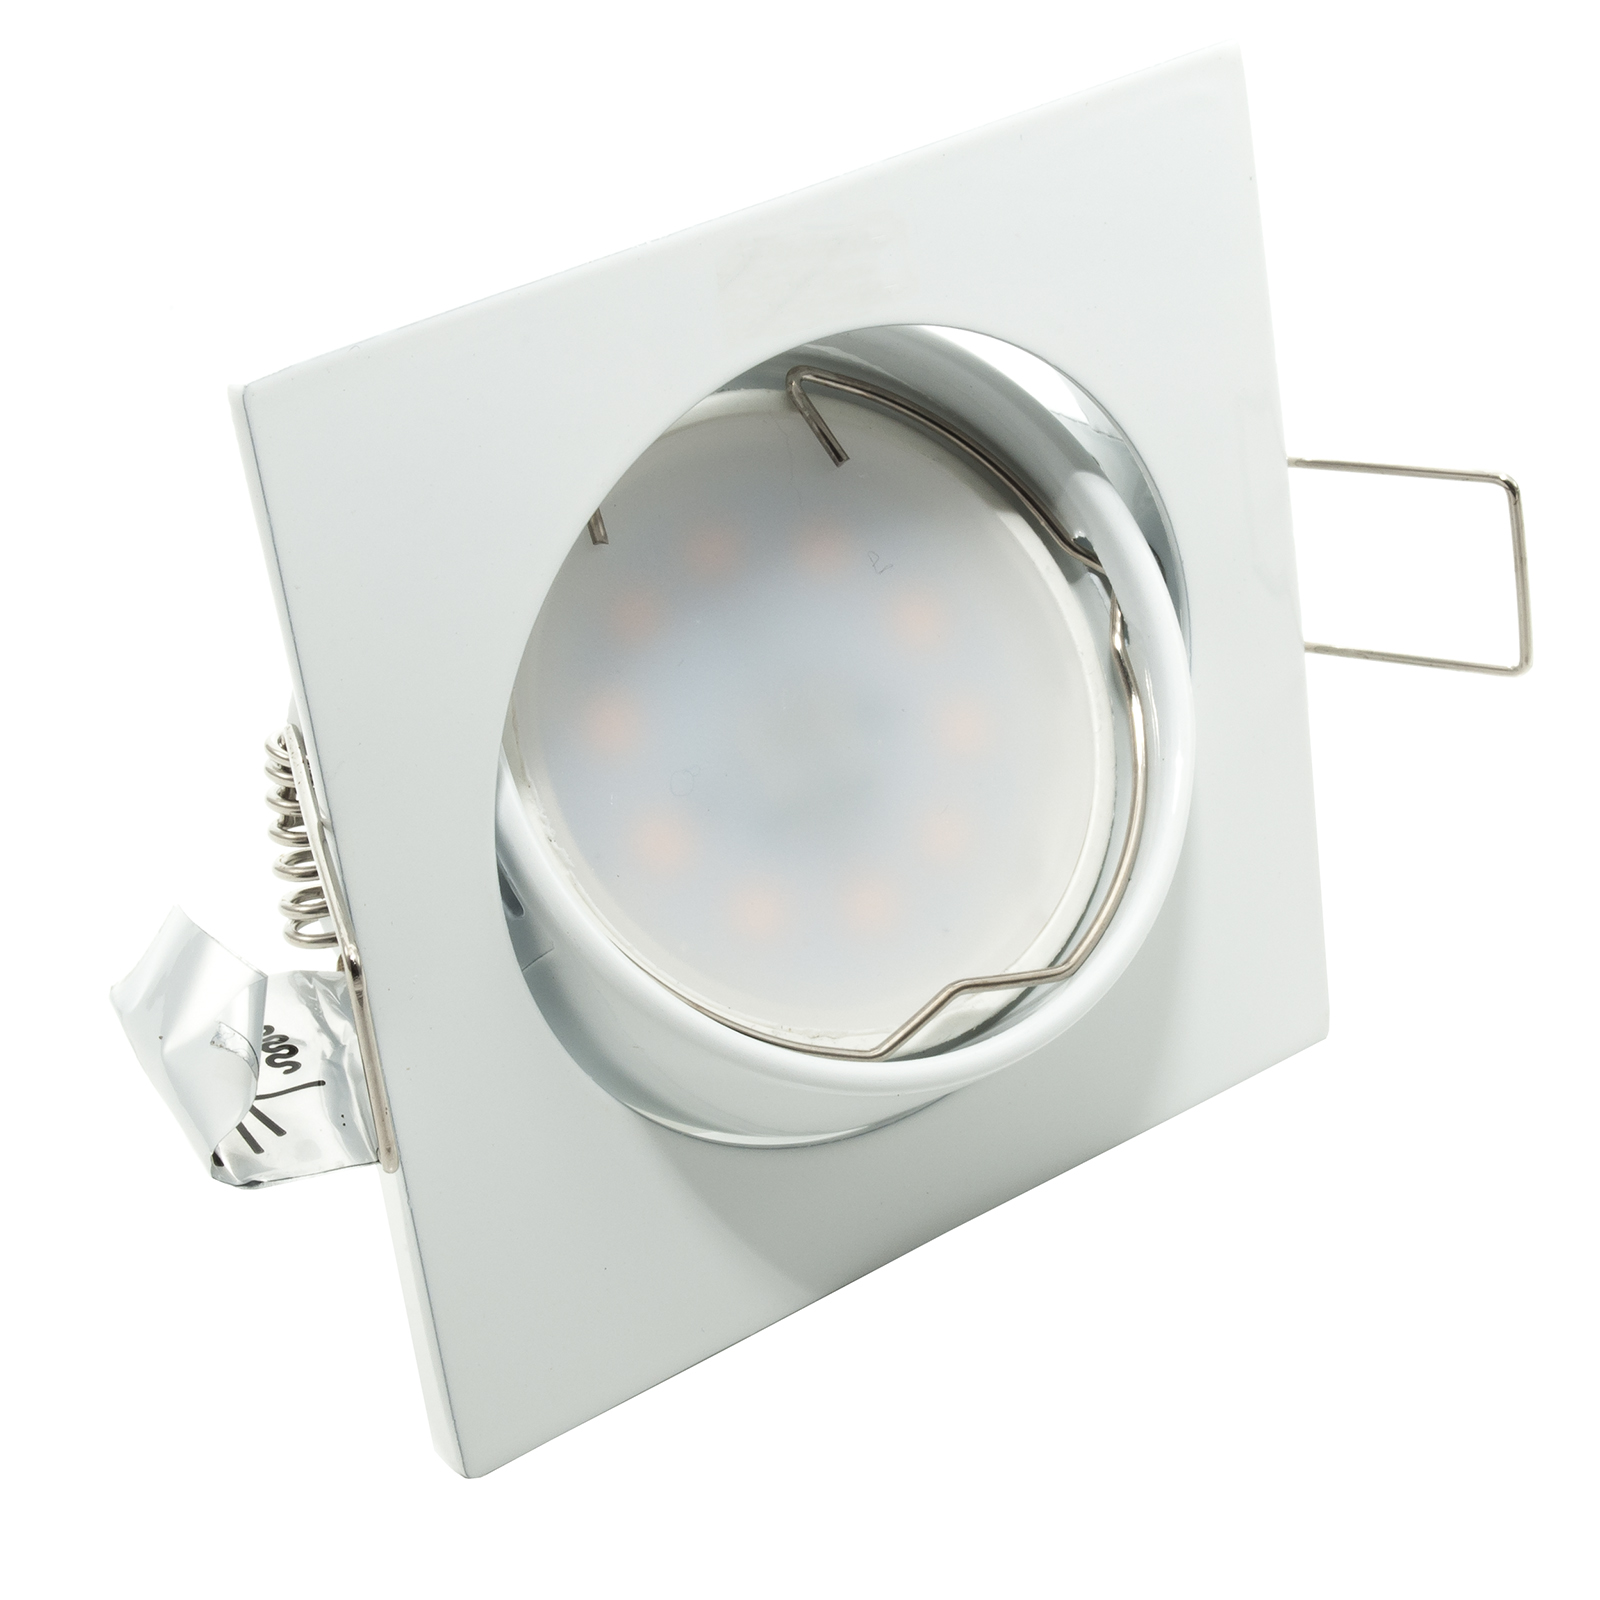 Spotlight lamp adjustable LED 8W recessed, white diffuse light GU10 hole 7cm